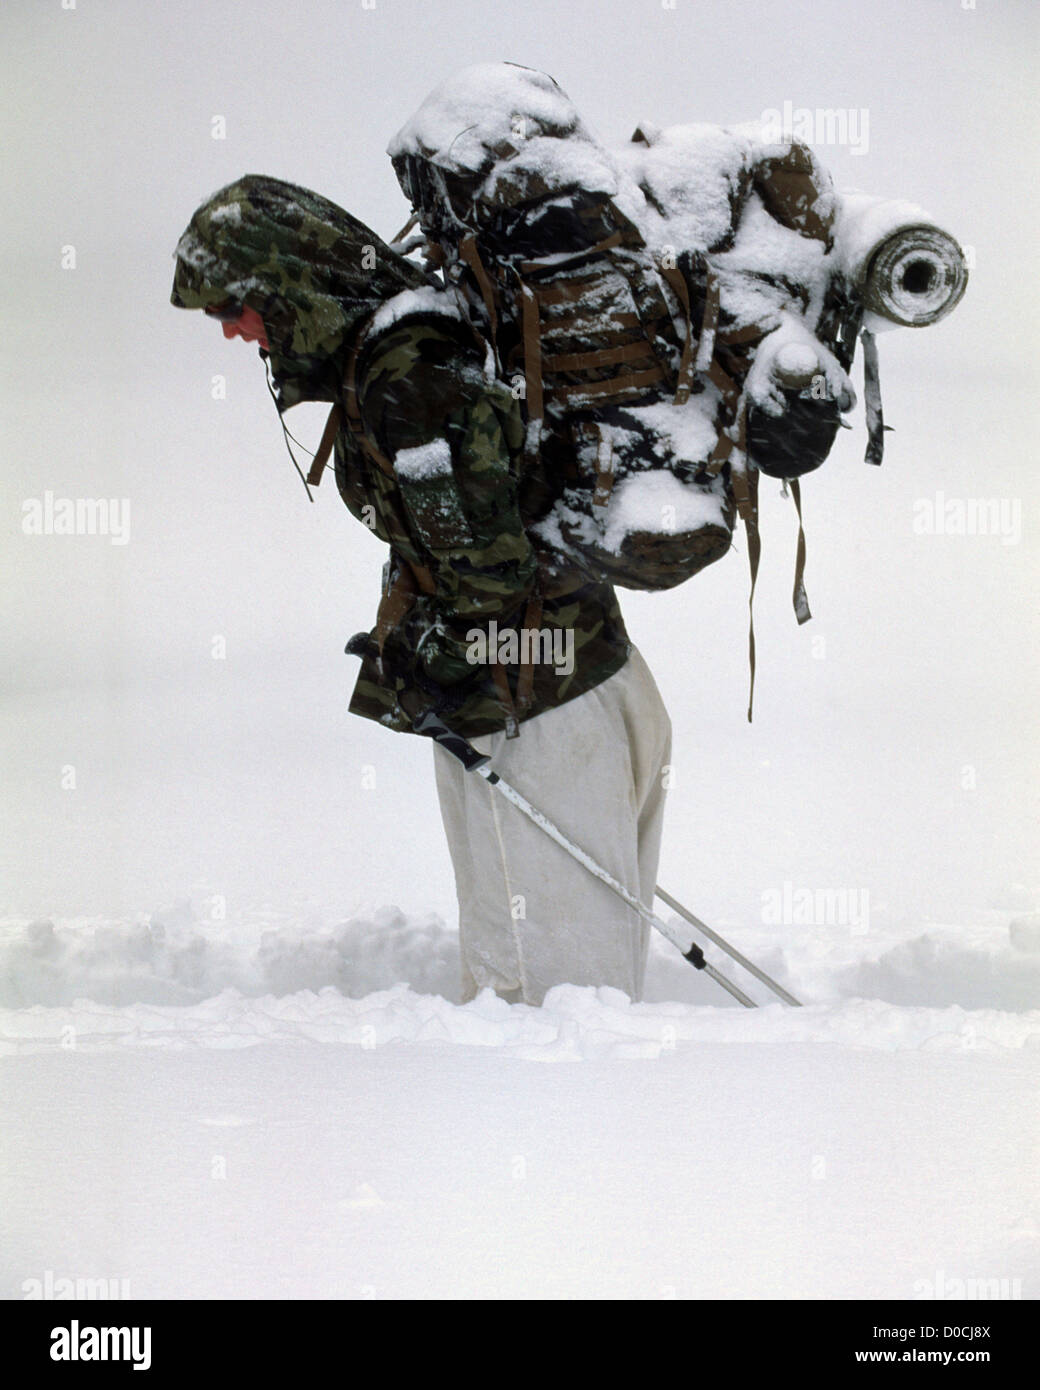 The Cold, Snowy Realities of Mountain Warfare Training - Stock Image